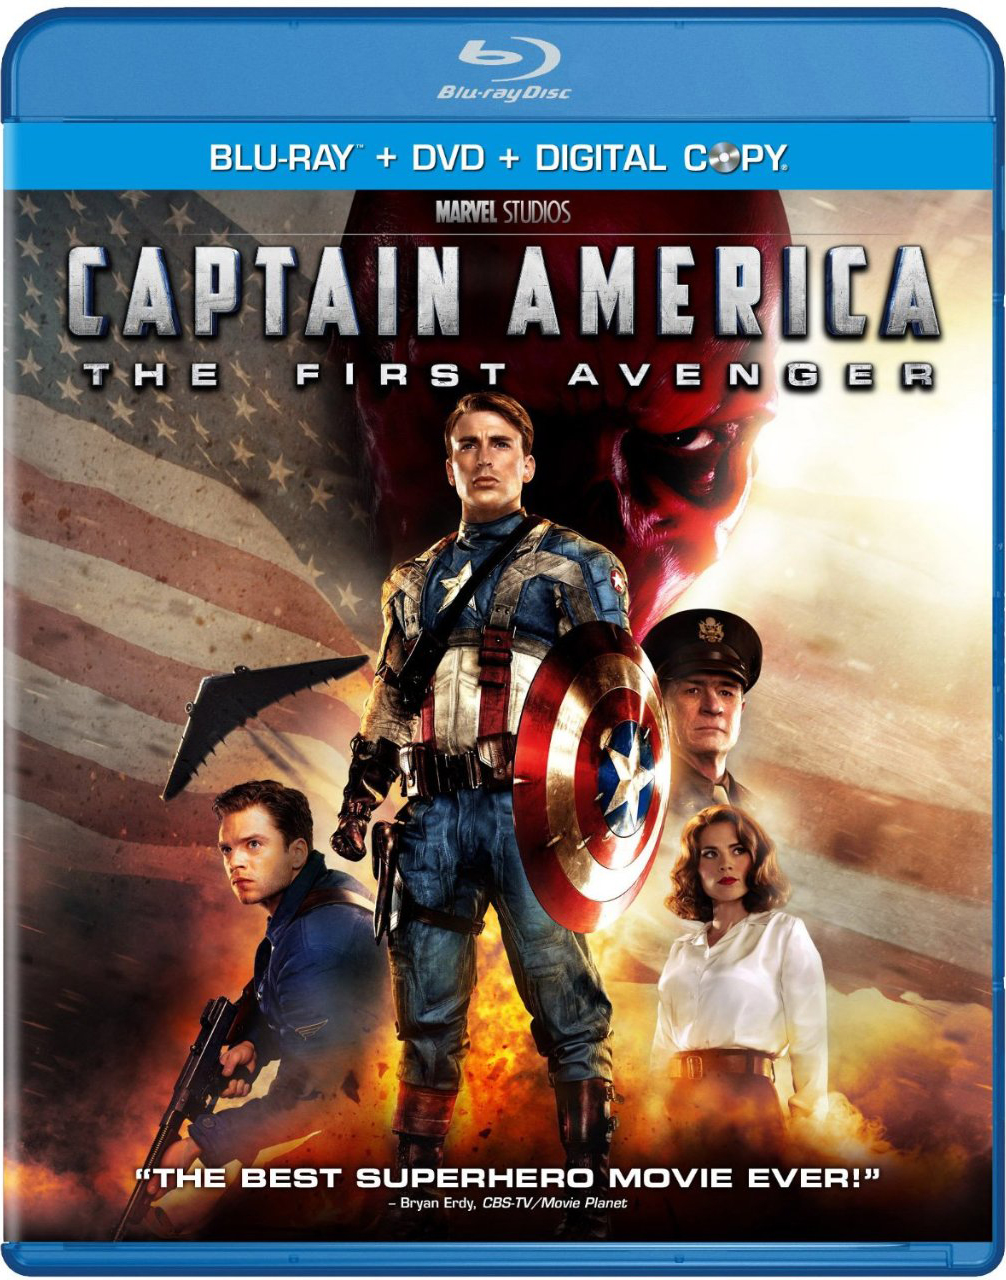 Captain America on Blu-Ray Oct 25th